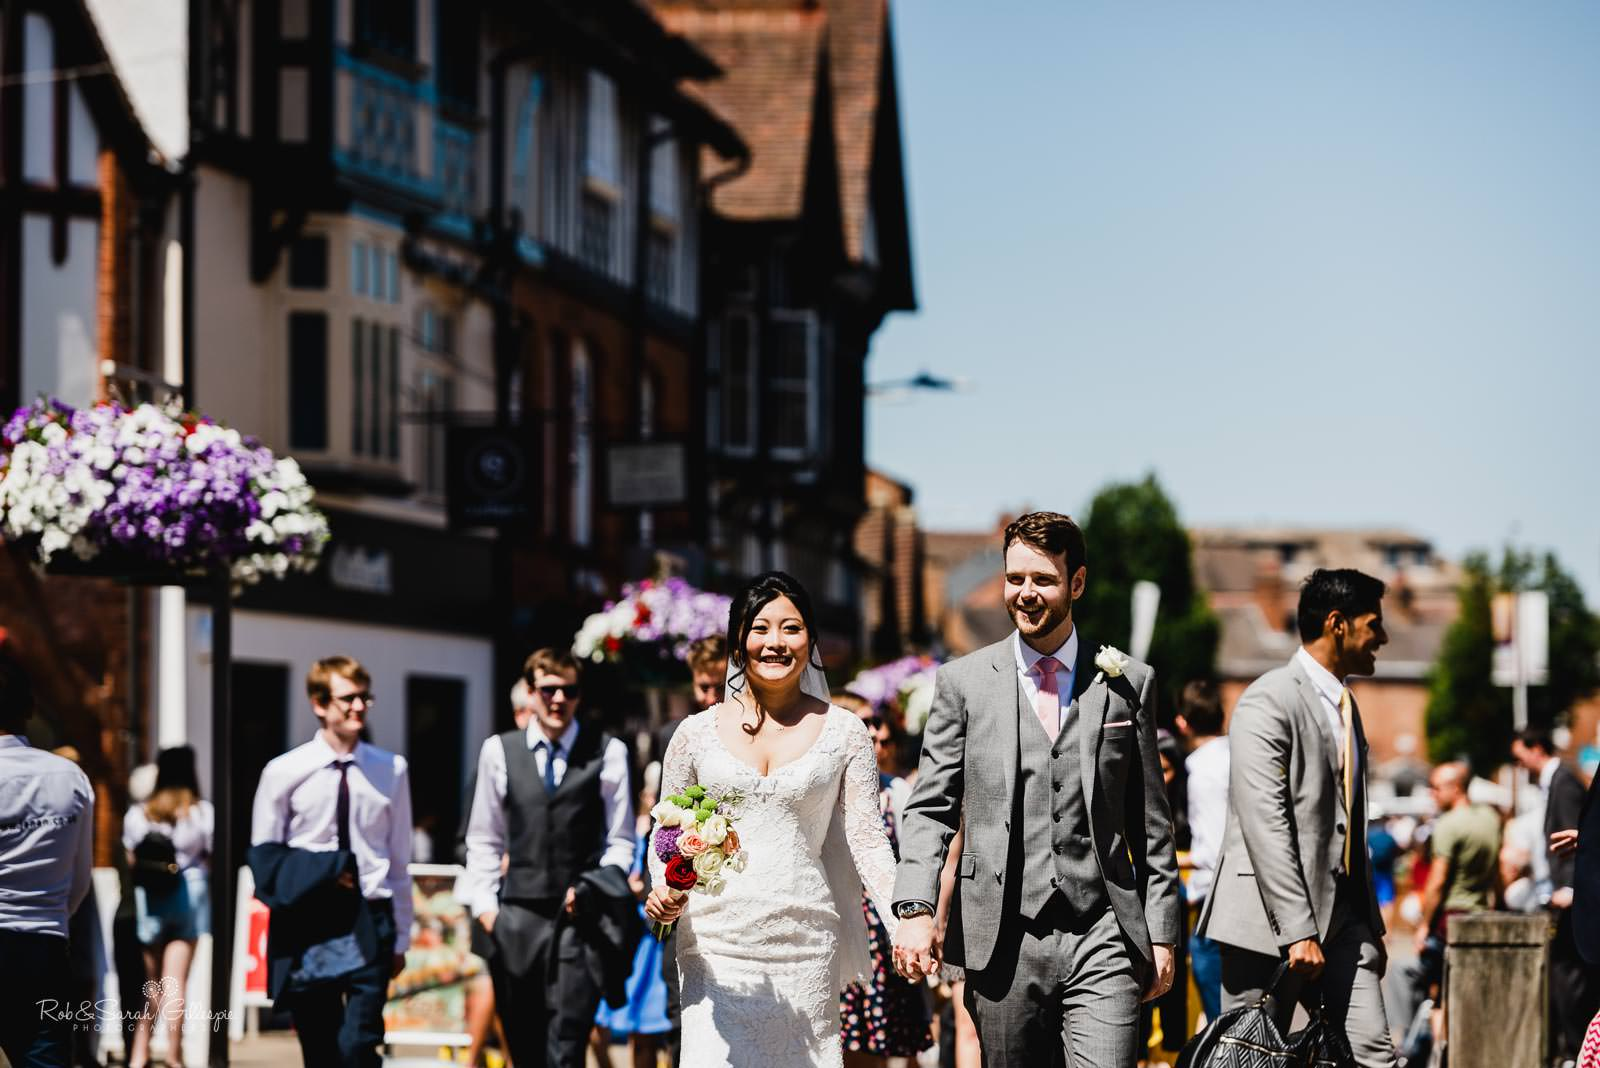 Bride, groom and wedding guests walk through Stratford upon Avon town centre